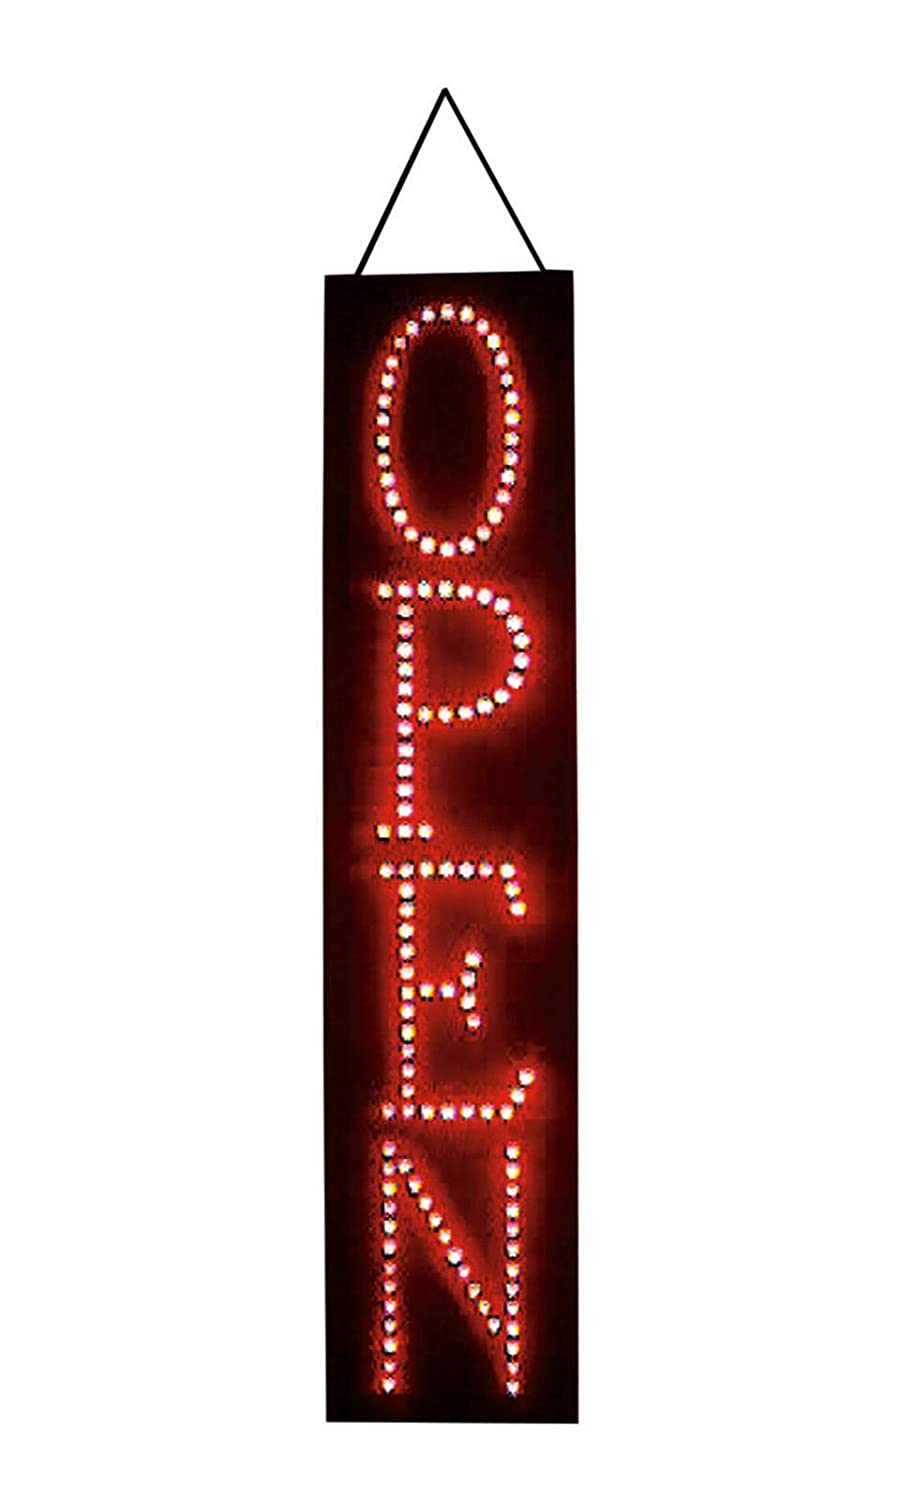 Buy All Store Open Sign Red LED 6 x 27 x 1 ⅜ Thick Vertical Stationary Soild or Flashing